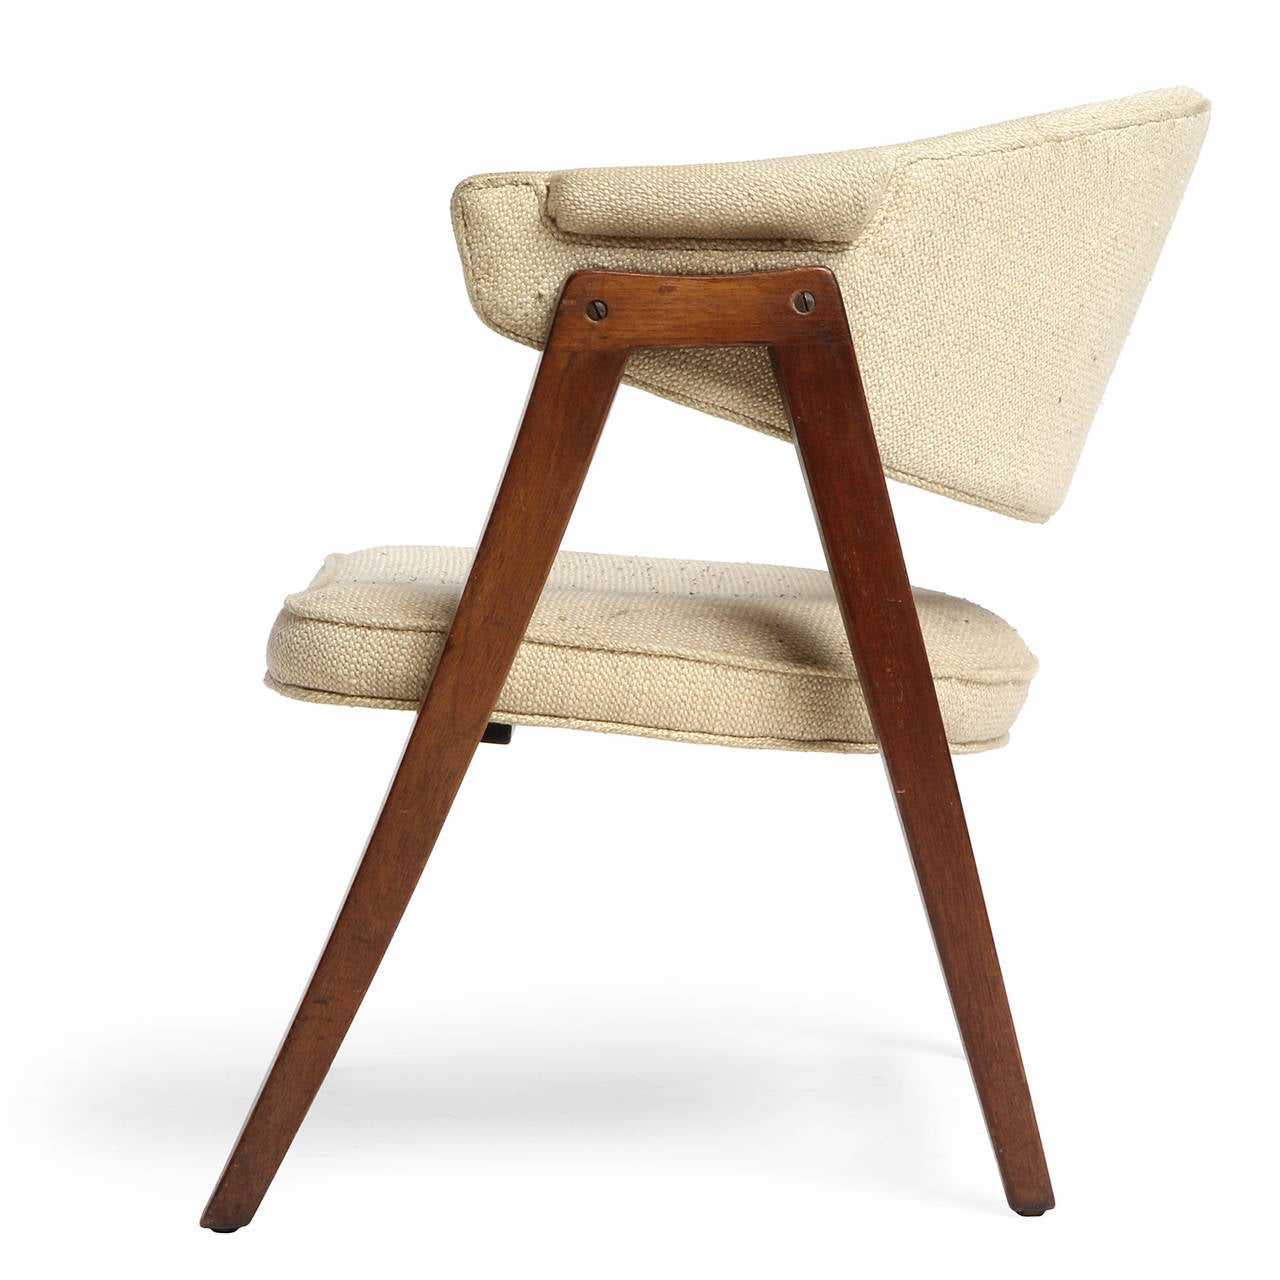 Lounge chair by edward wormley for sale at 1stdibs - Edward wormley chairs ...